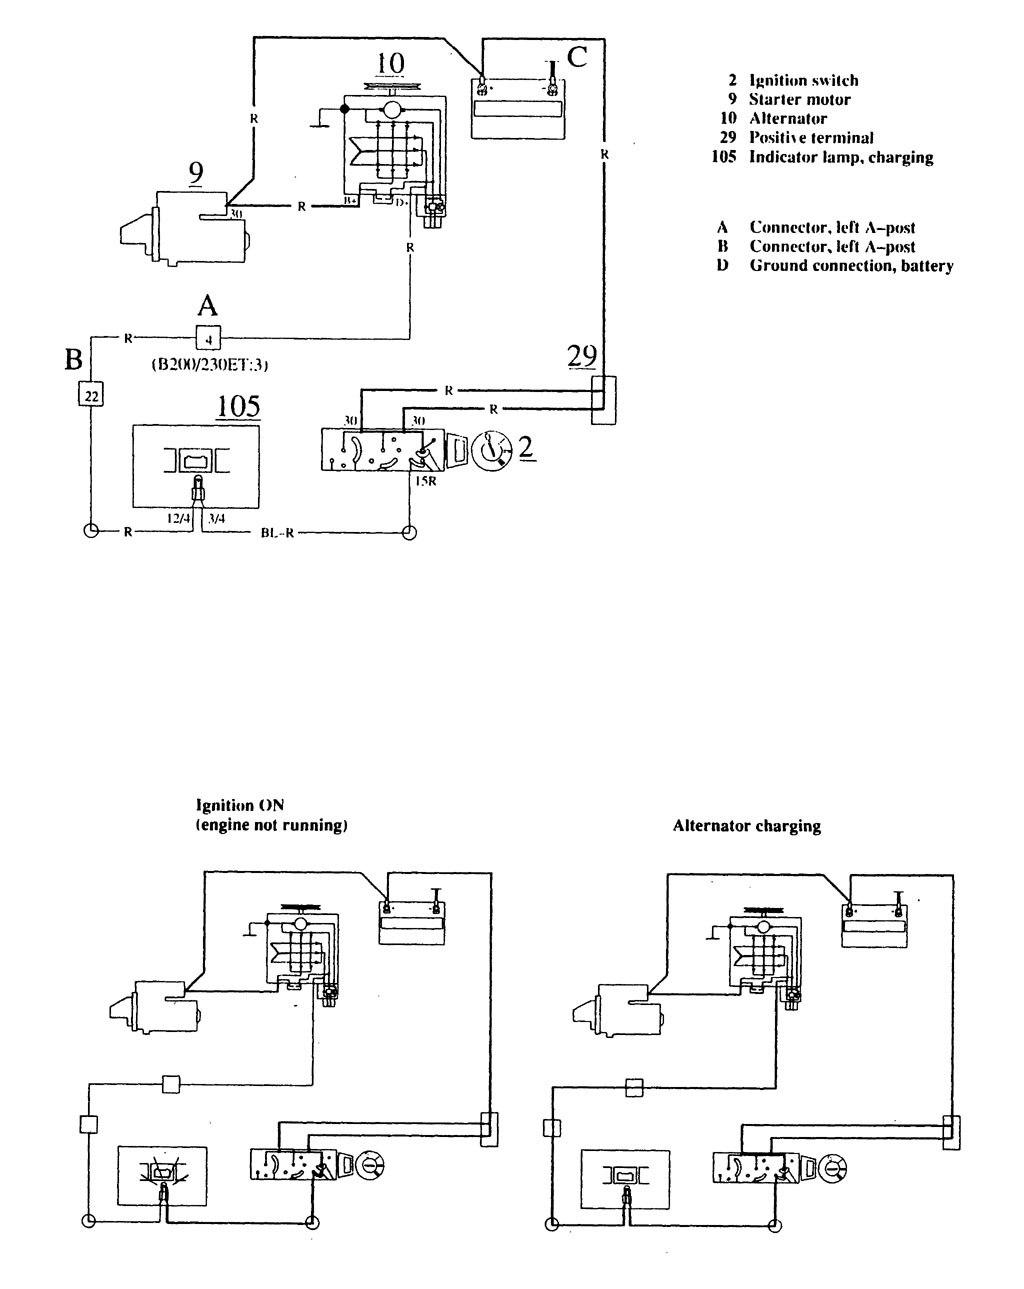 hight resolution of 1989 volvo 240 battery wiring diagrams u2022 wiring diagram 1986 volvo 240 wiring diagrams 1990 volvo 240 wiring manual